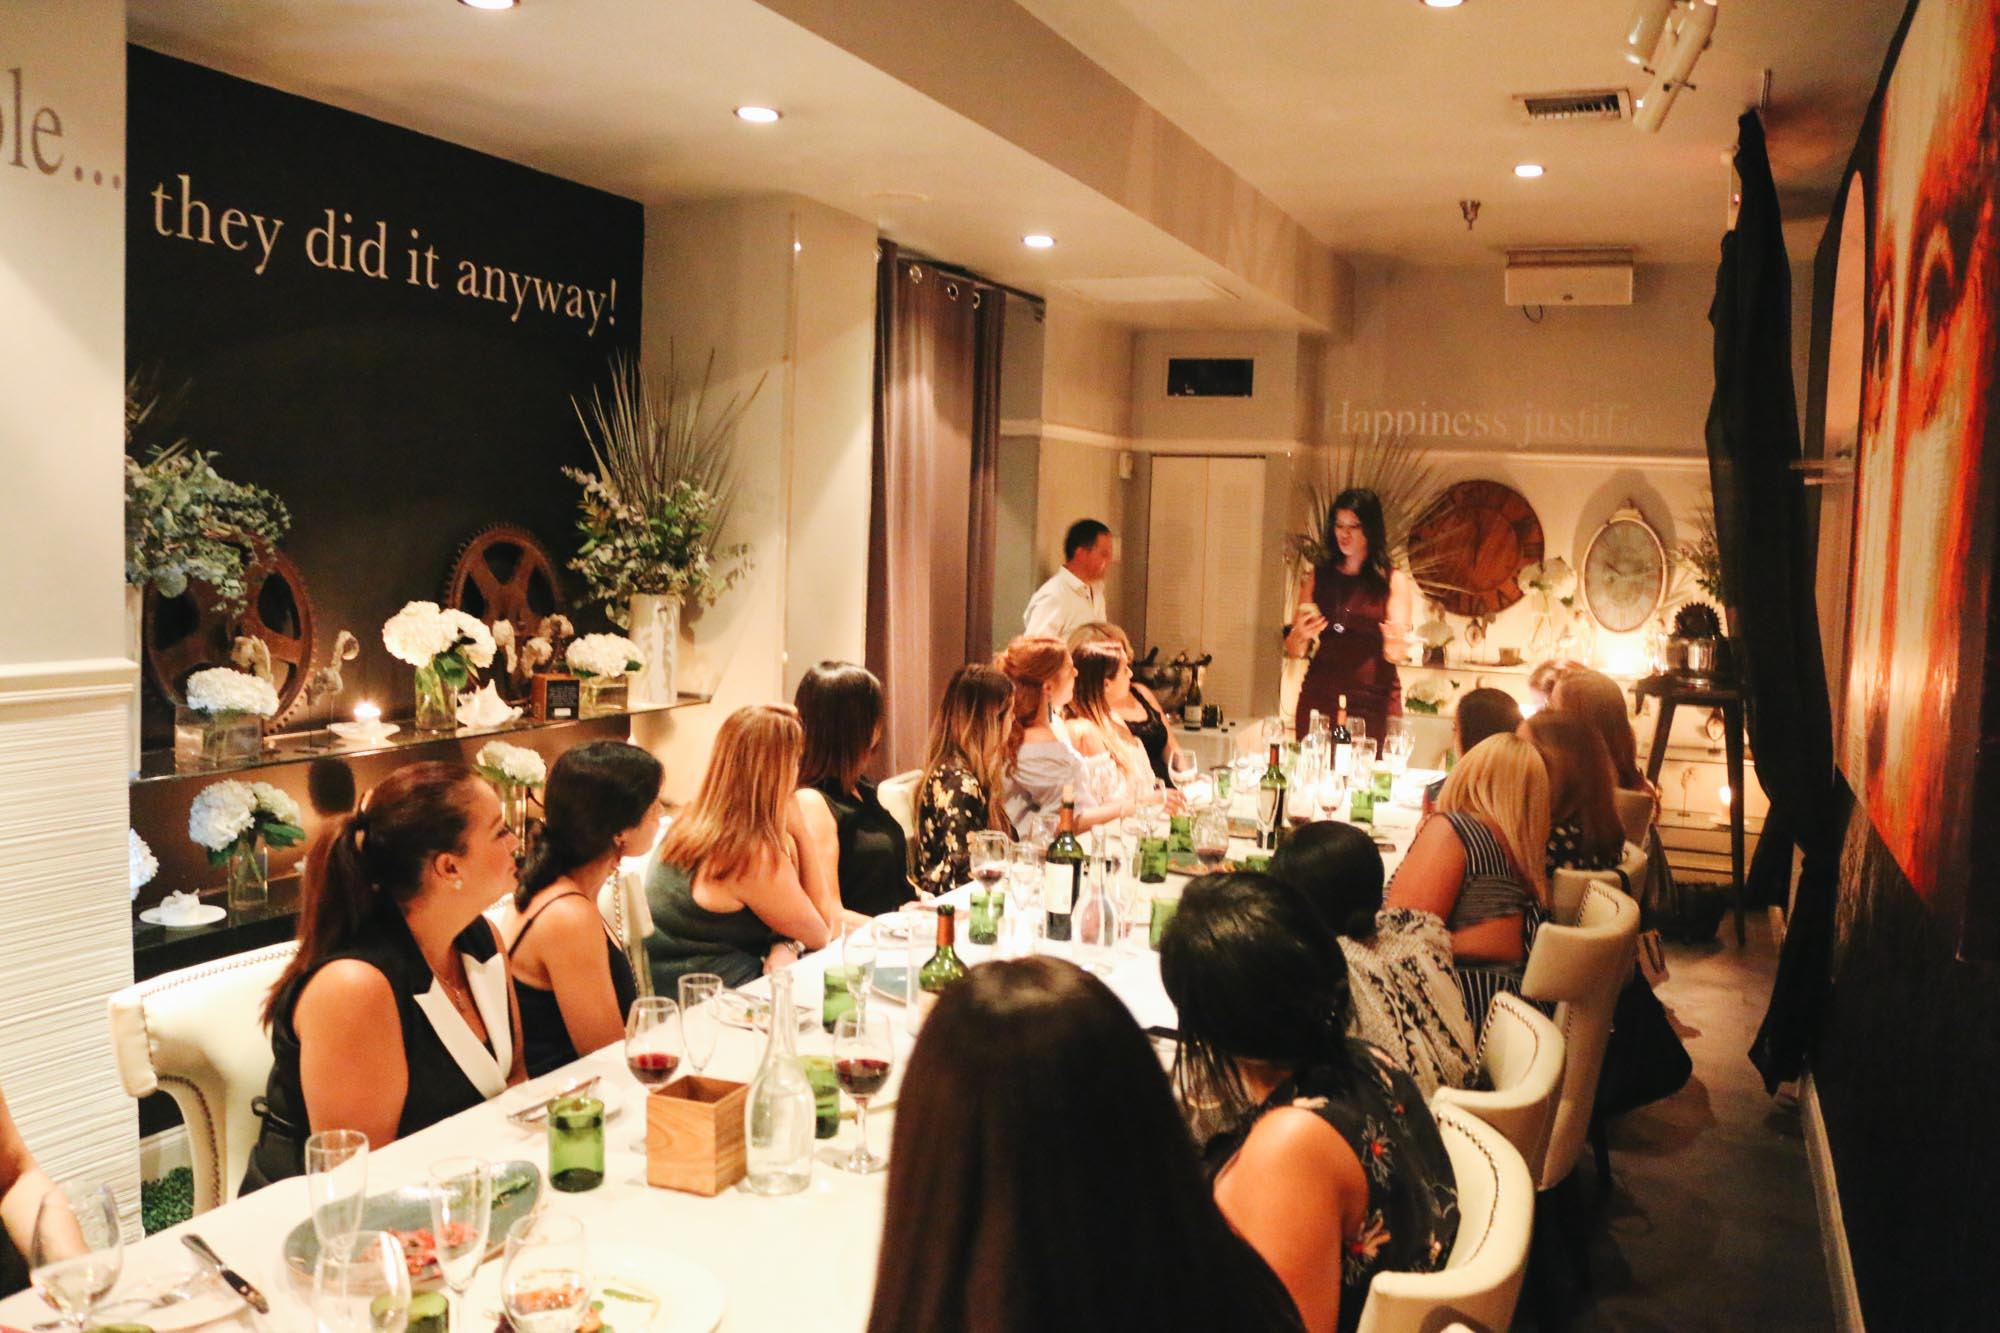 Women Who Wine Uncorked Conversations-Dolores Lolita-Miami Wine Events-Wine Tasting Miami-21.jpg